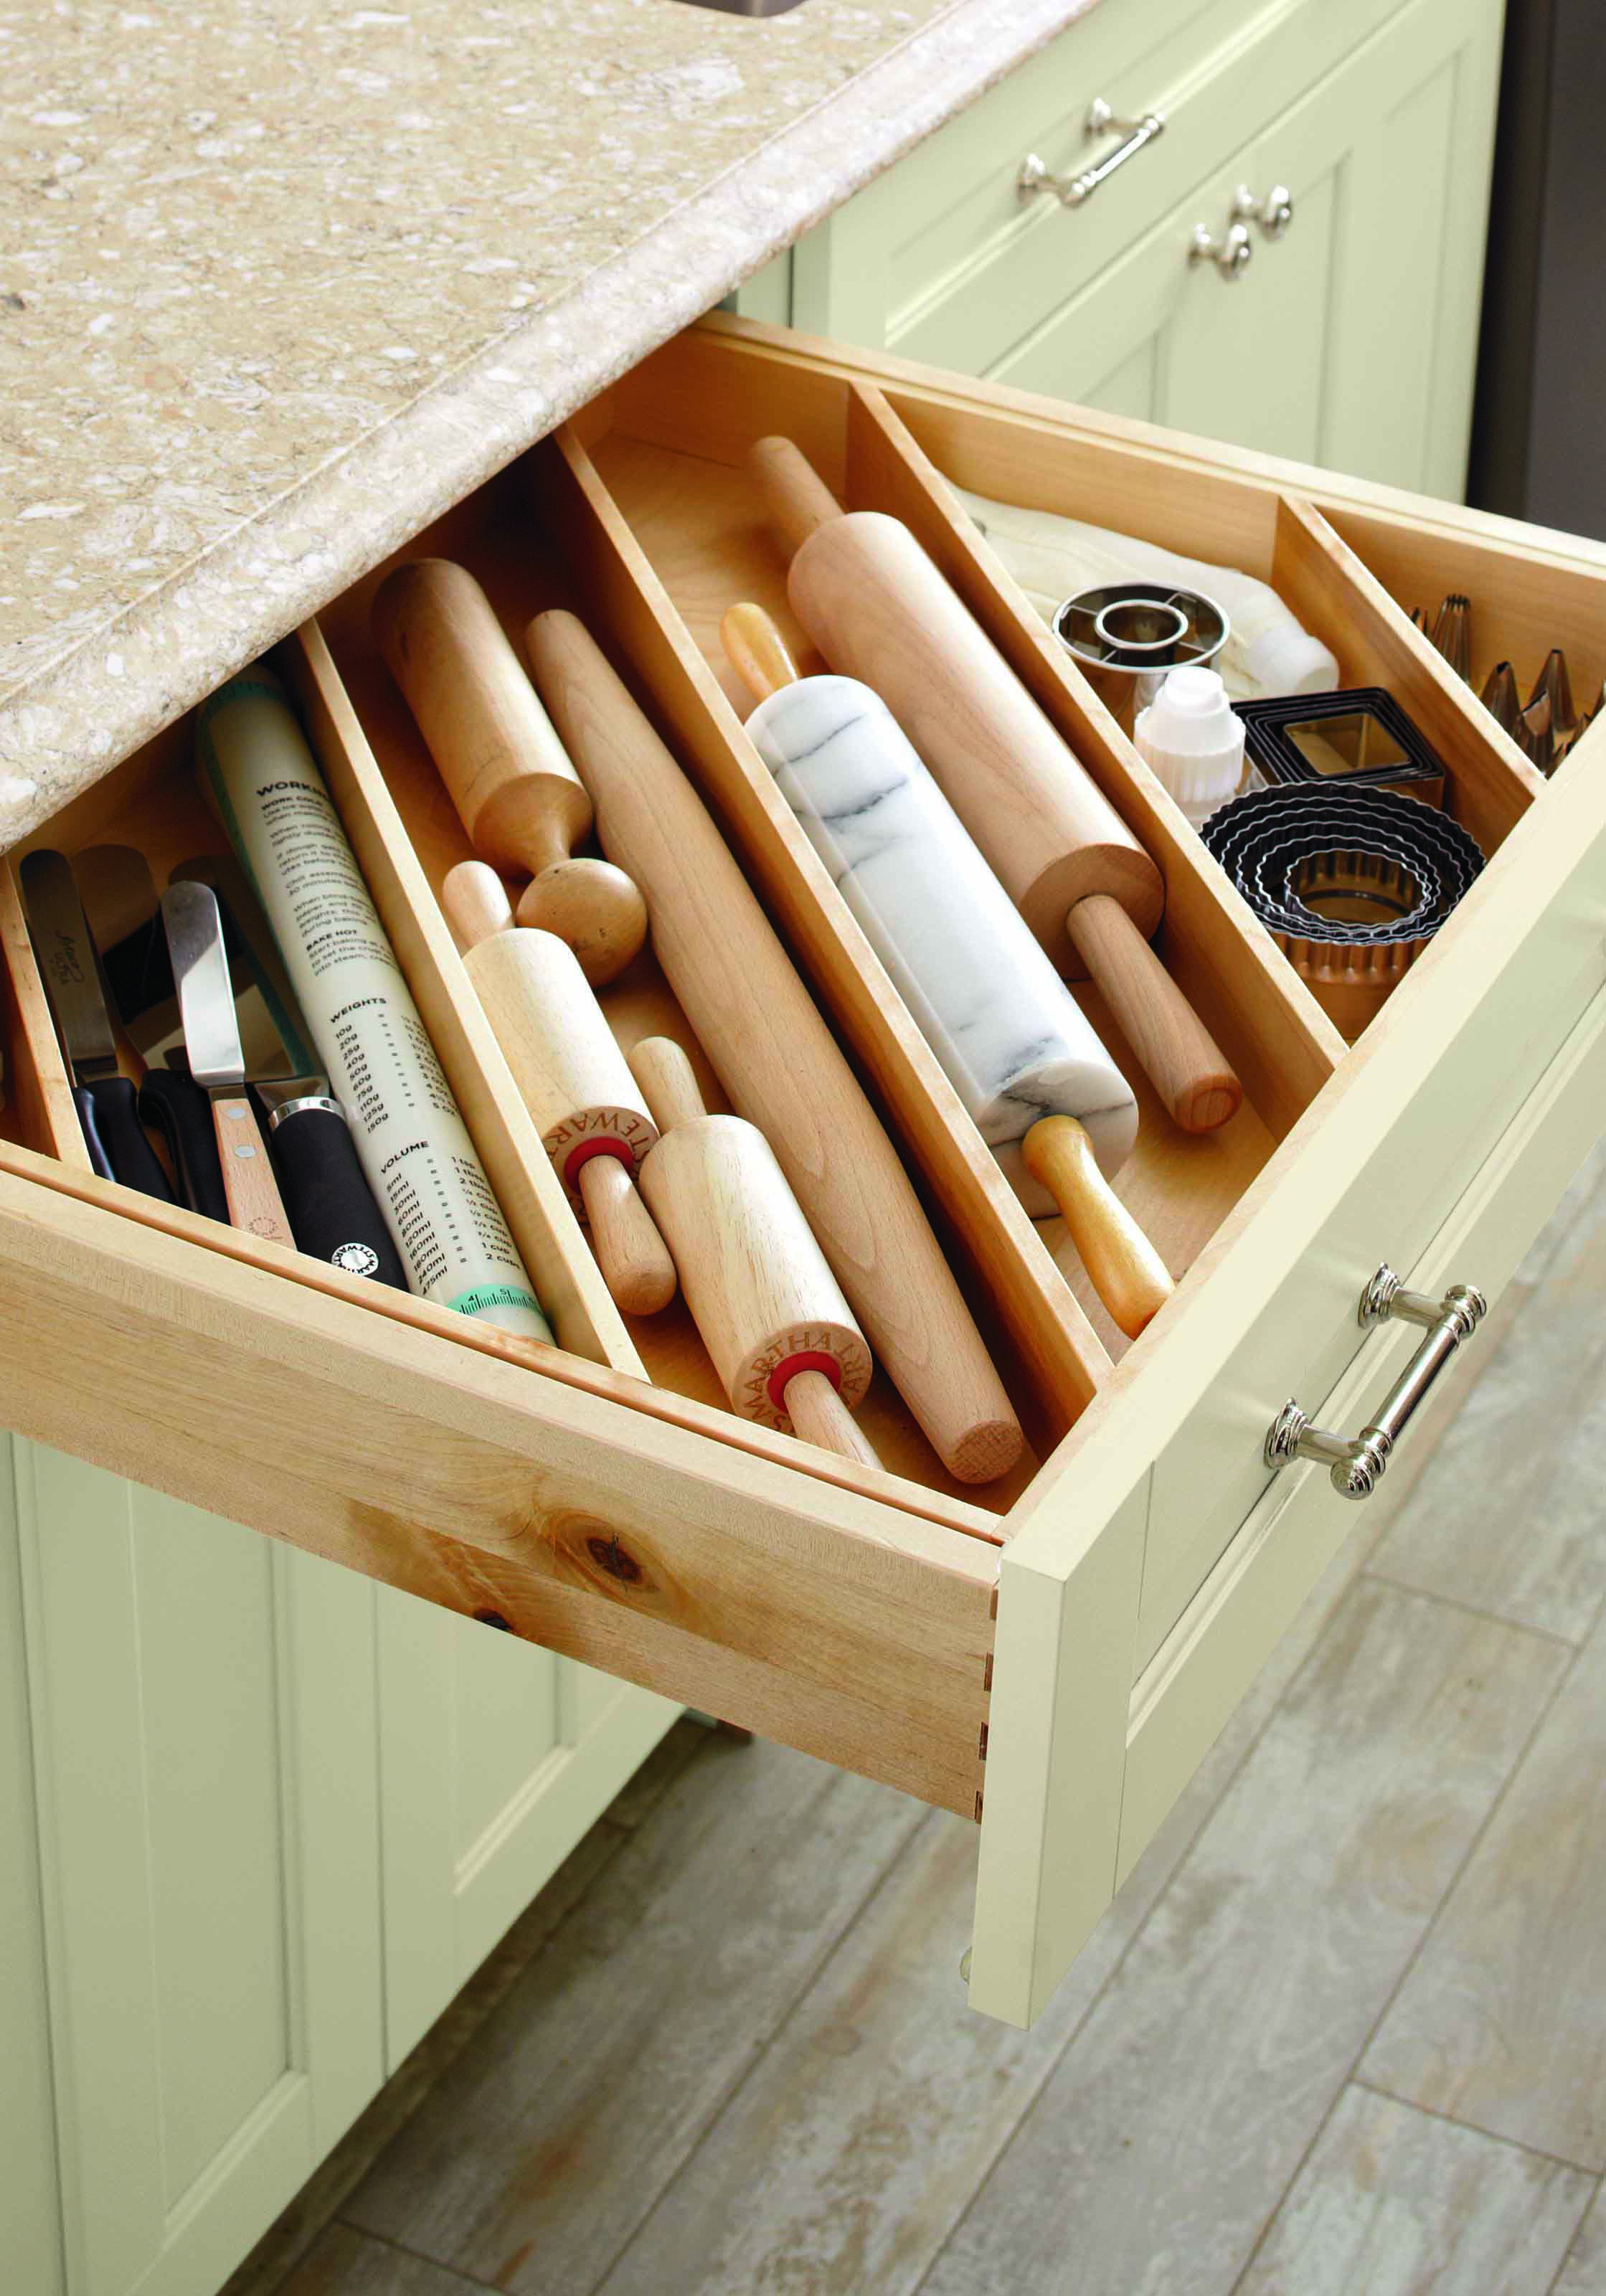 Storing Utensils Diagonally Allows For A More Efficent Use Of Space Be Sure To Atte Ideias De Organizacao De Cozinha Organizacao Da Cozinha Cozinhas Modernas